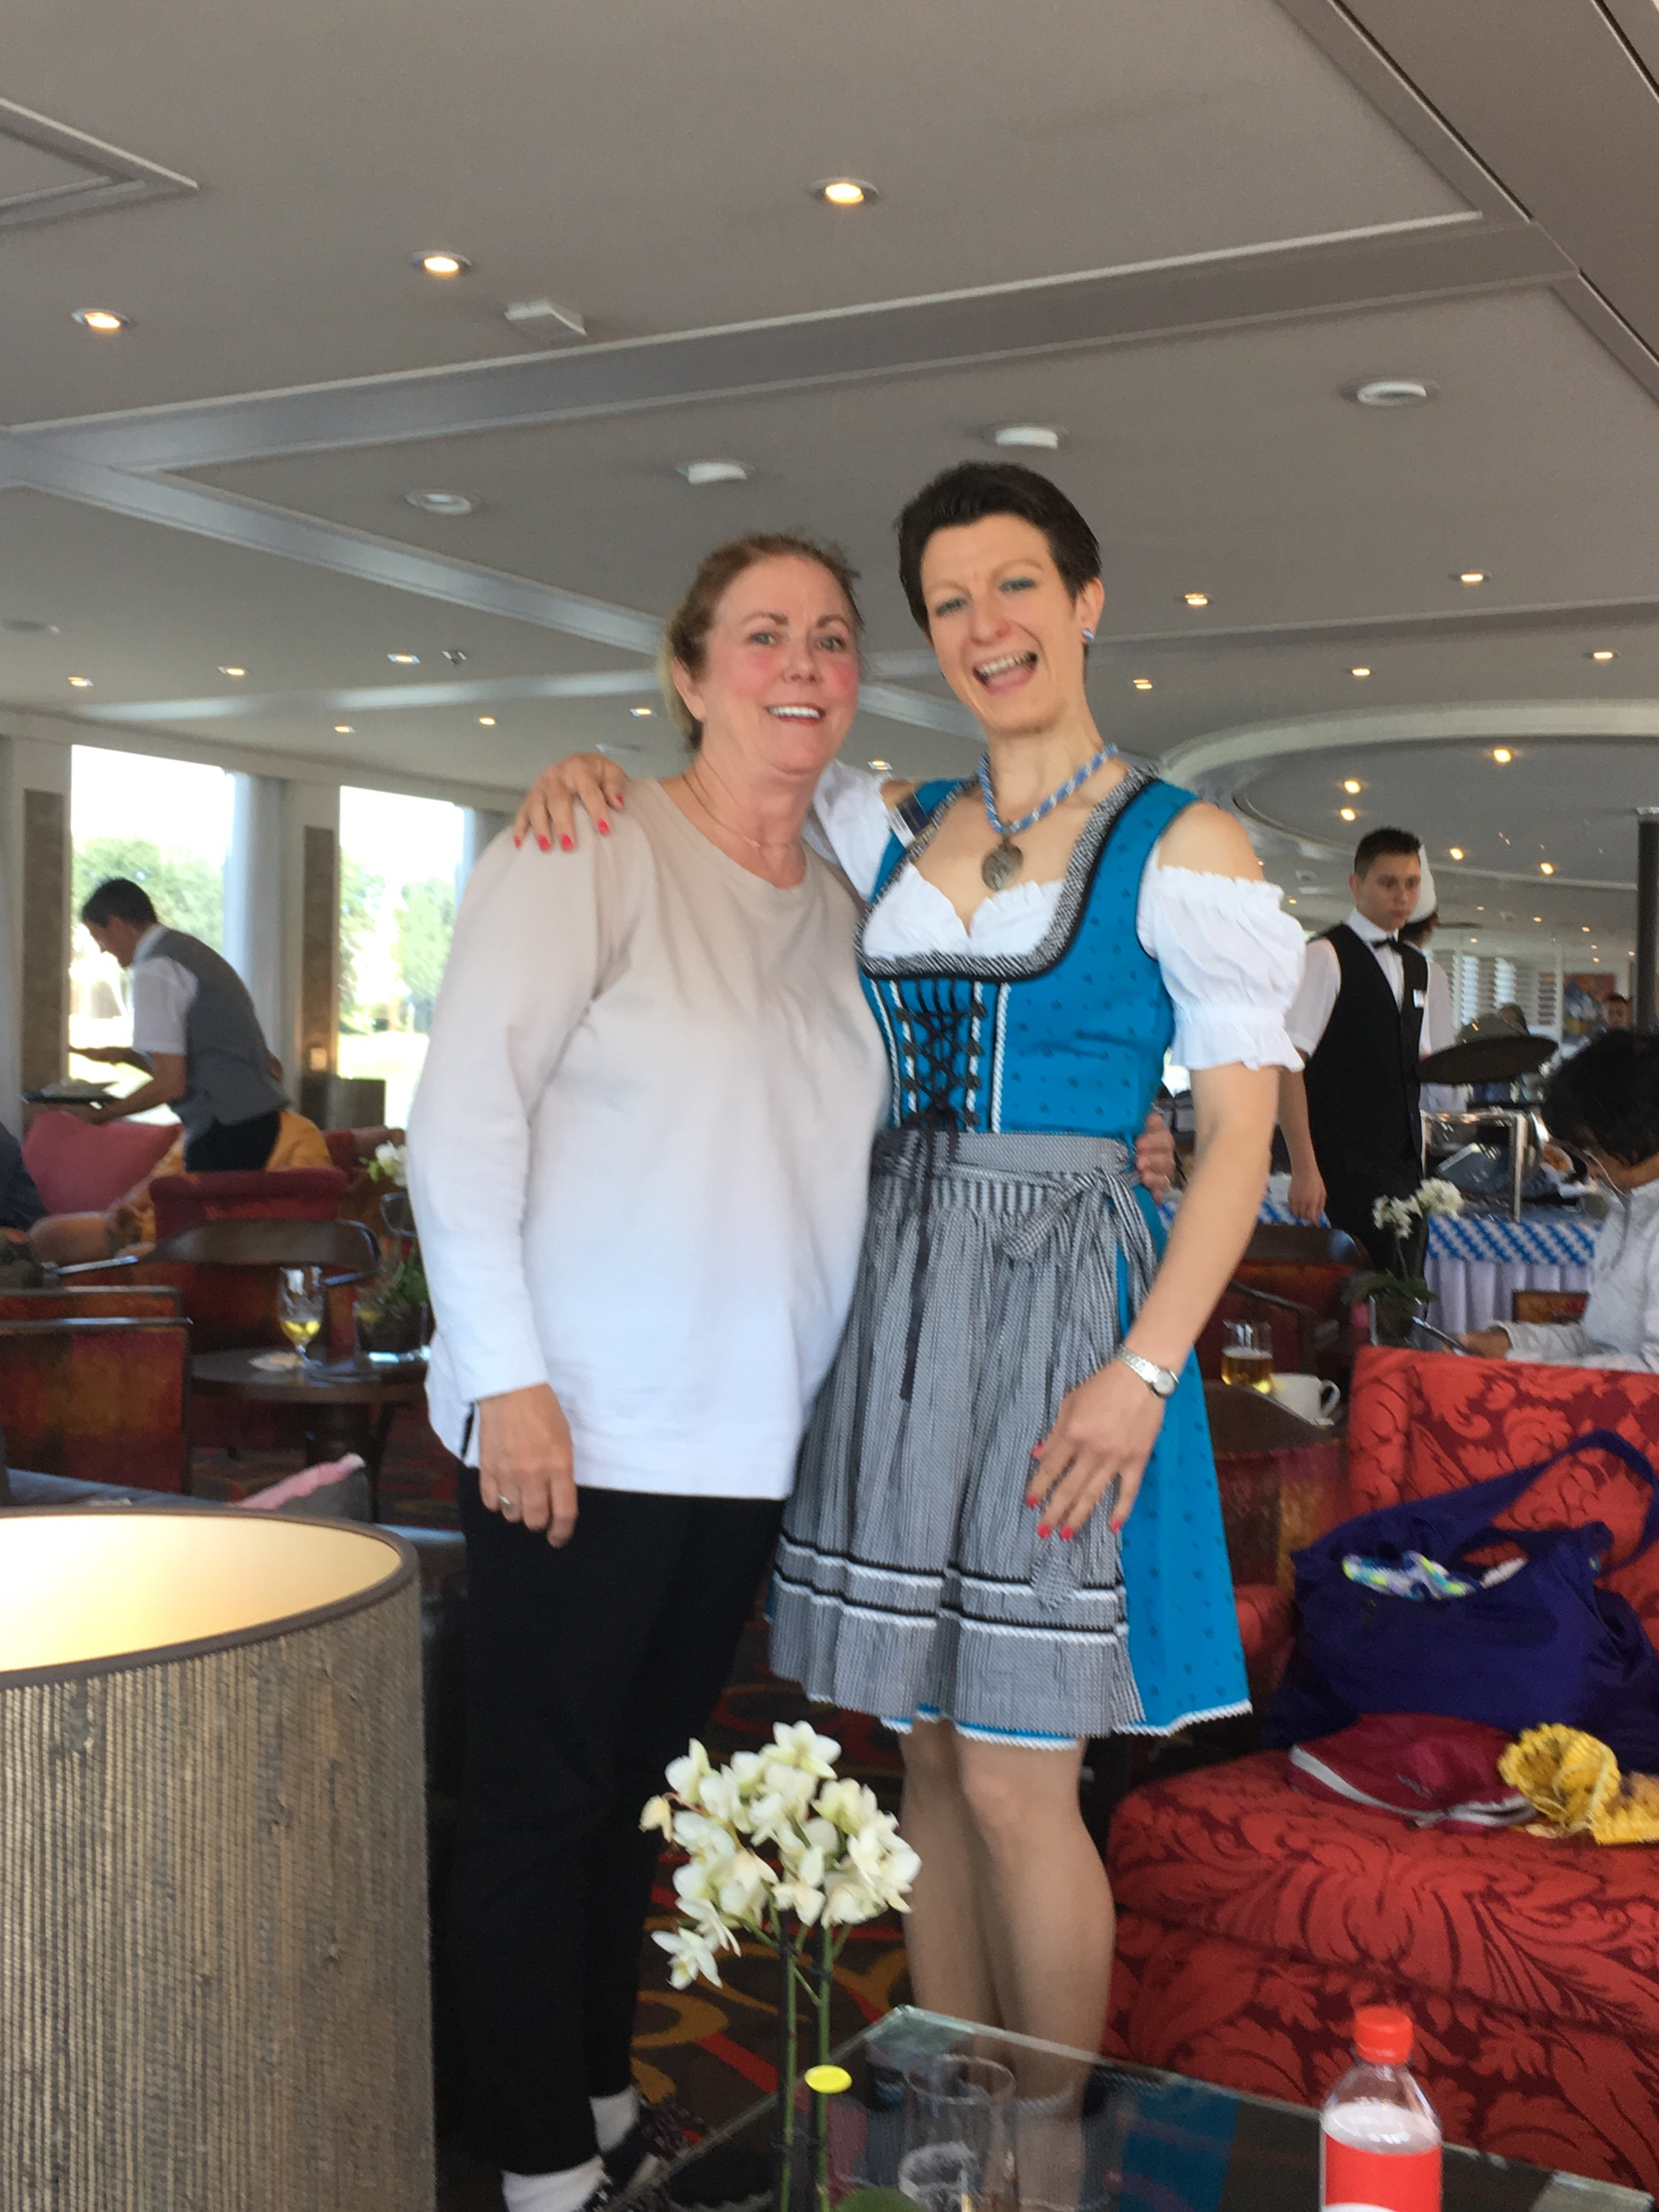 Anne with Jess at German food party while sailing—see the hard working crew in the background?